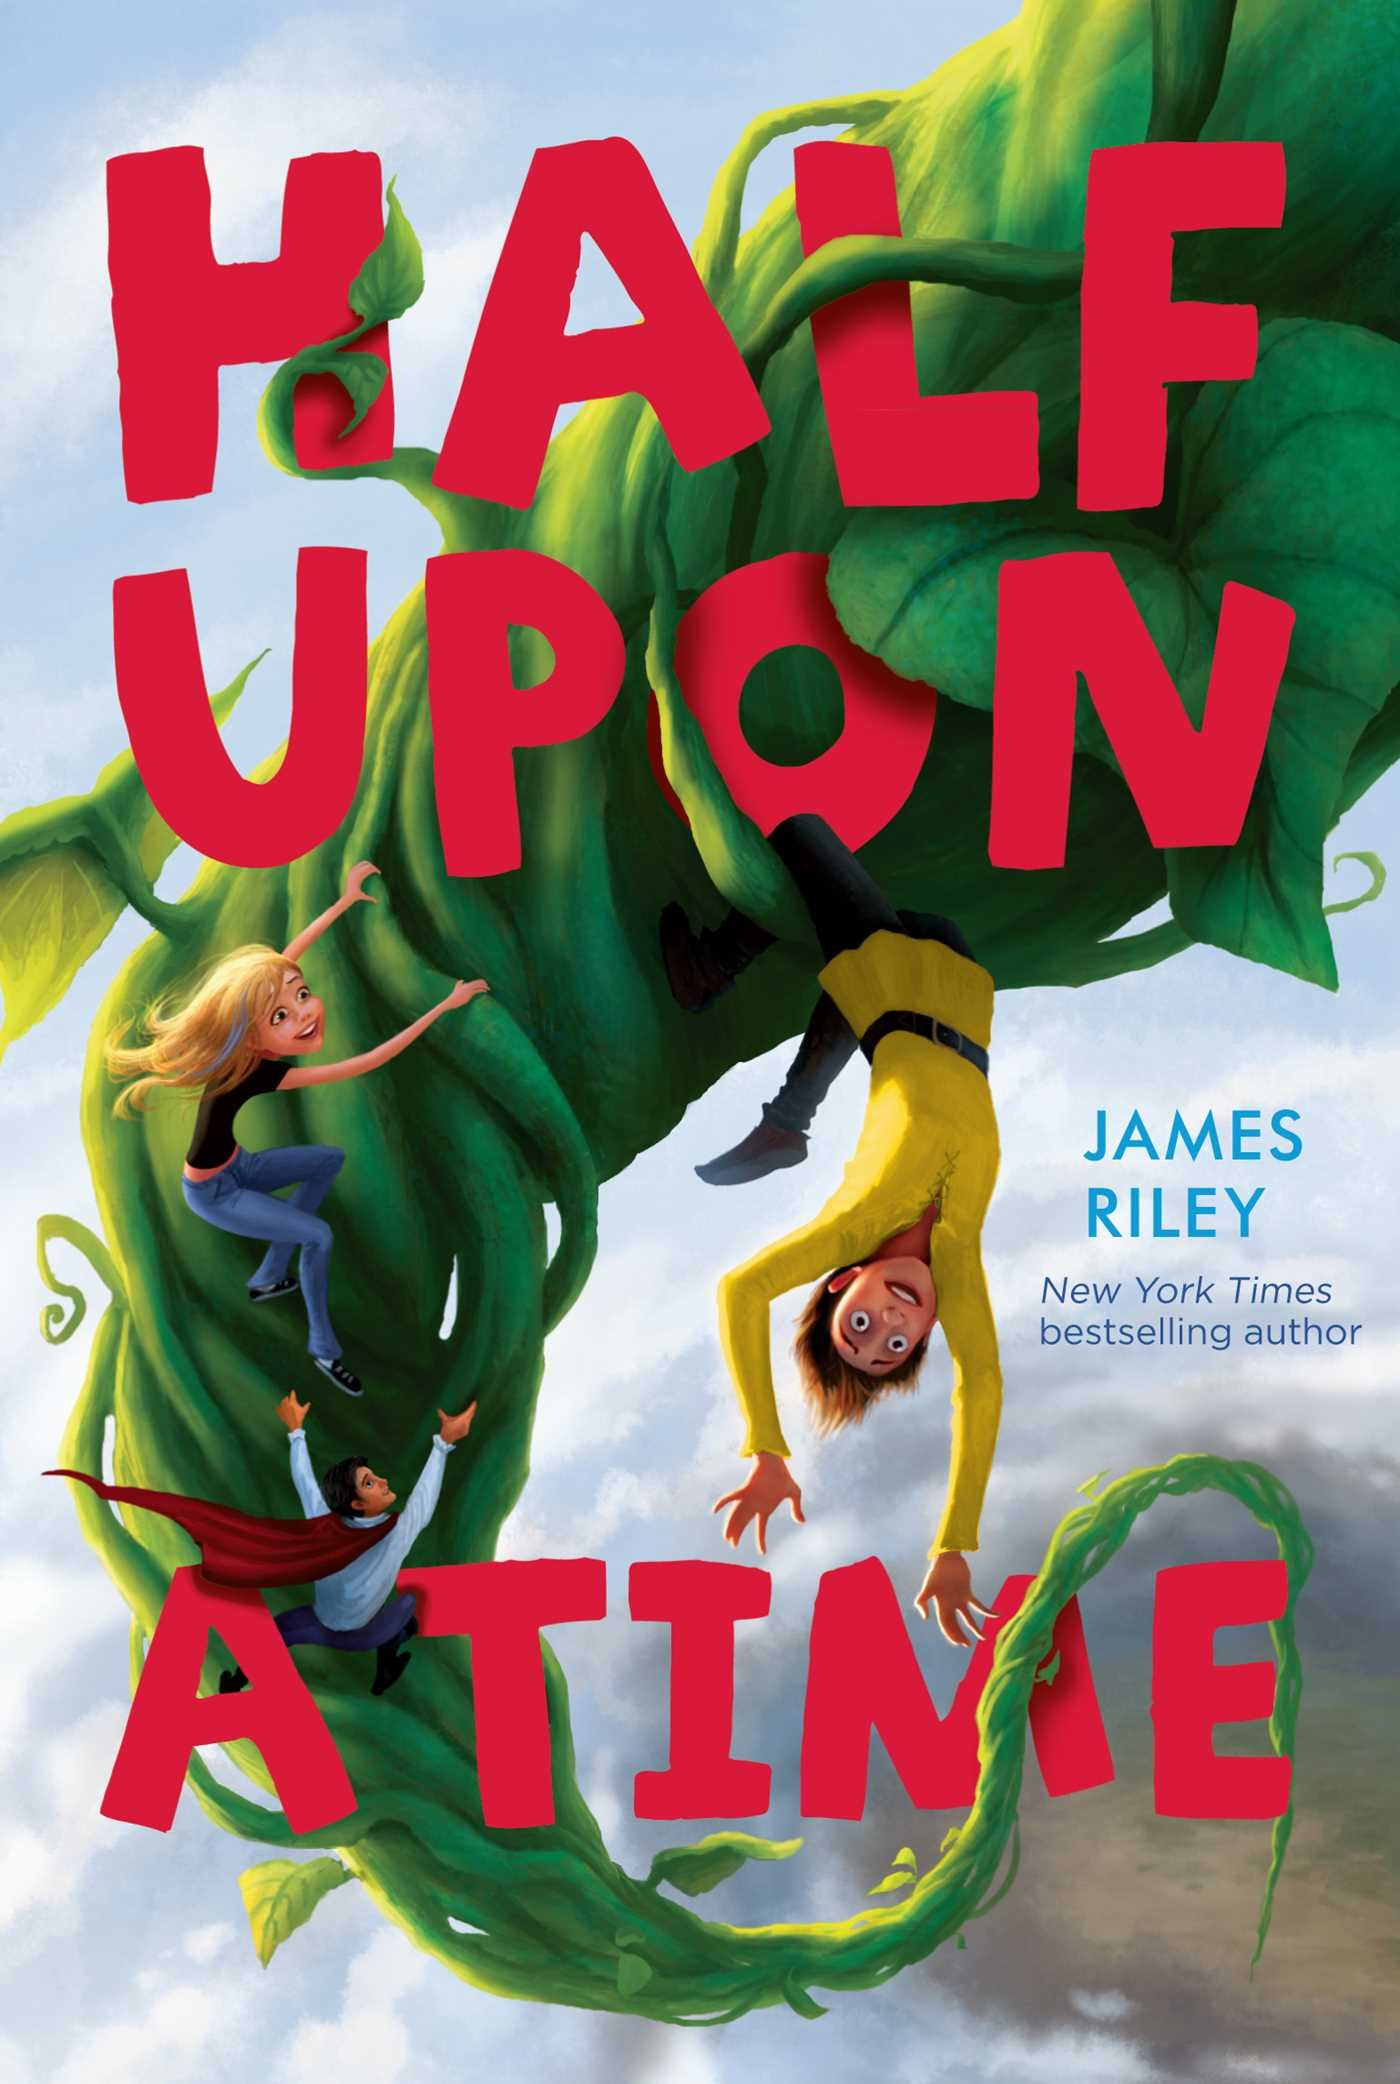 HALF UPON A TIME (BOOK 1) - Jack lives in a fantasy world. Really. He's the son of the infamous Jack who stole the magic beans from the giant, and he's working hard to restore his family's reputation. He finds the perfect opportunity when a